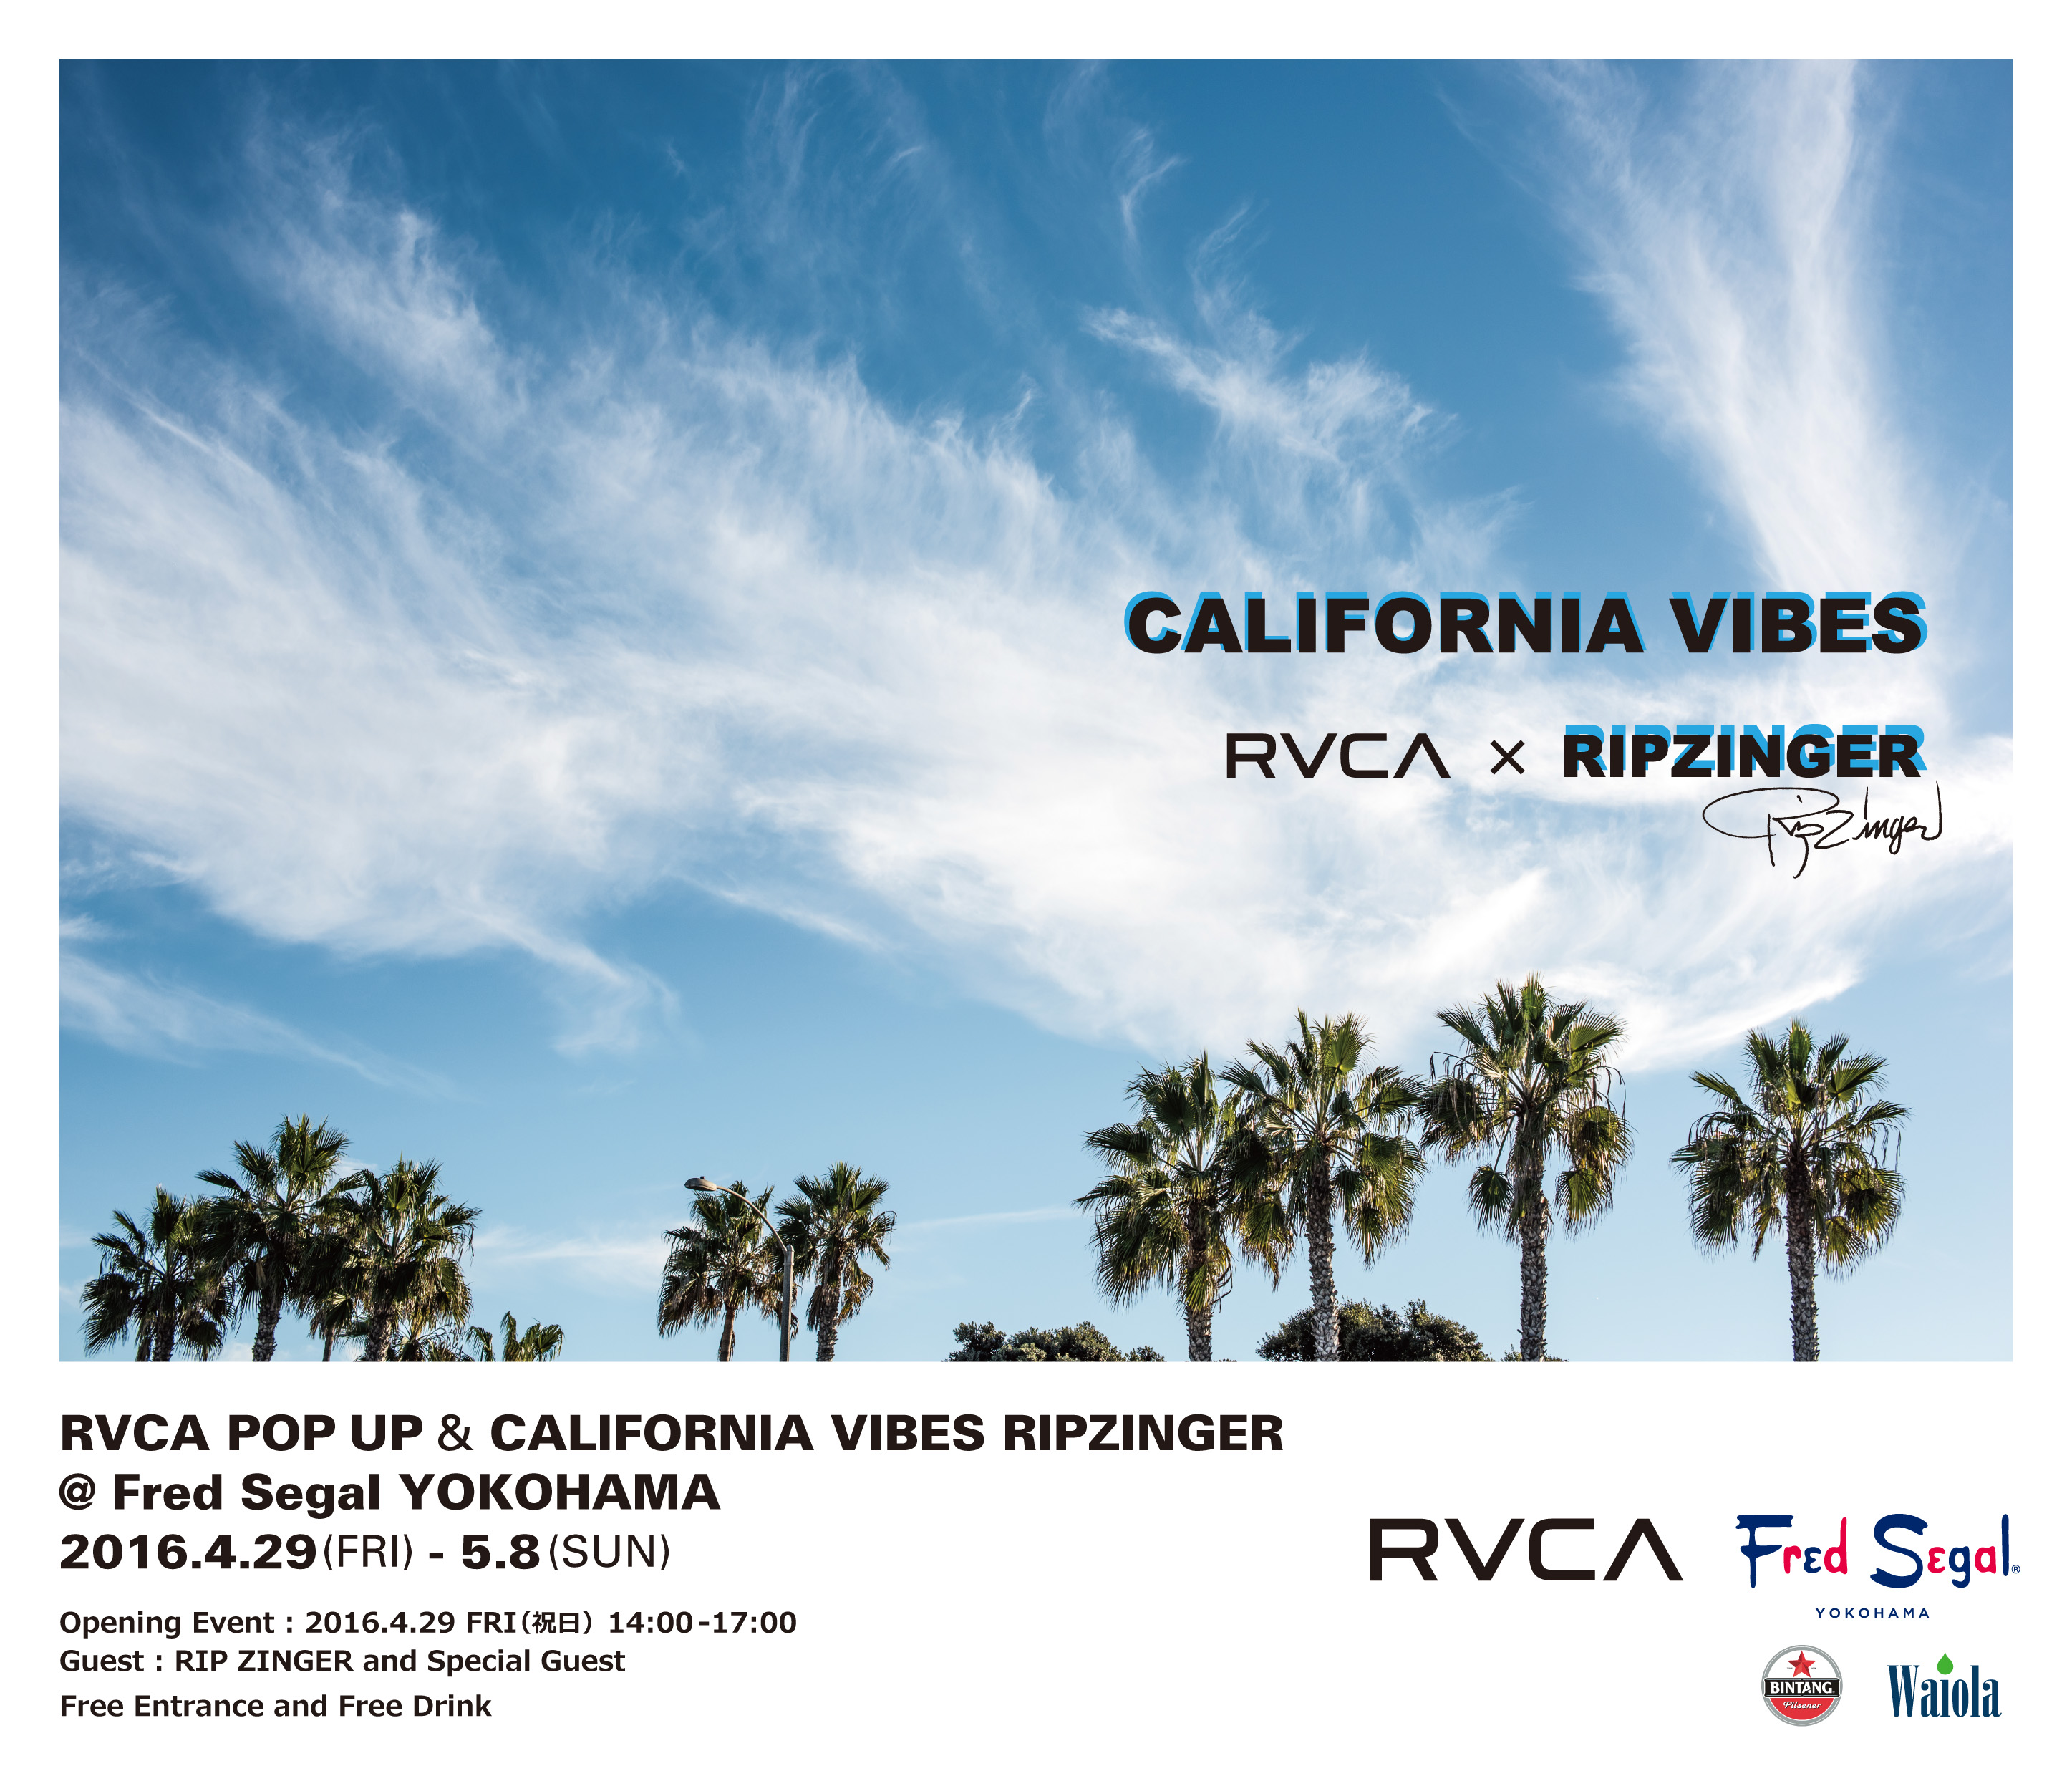 CALIFORNIA VIBES RIPZINGER BY RVCA